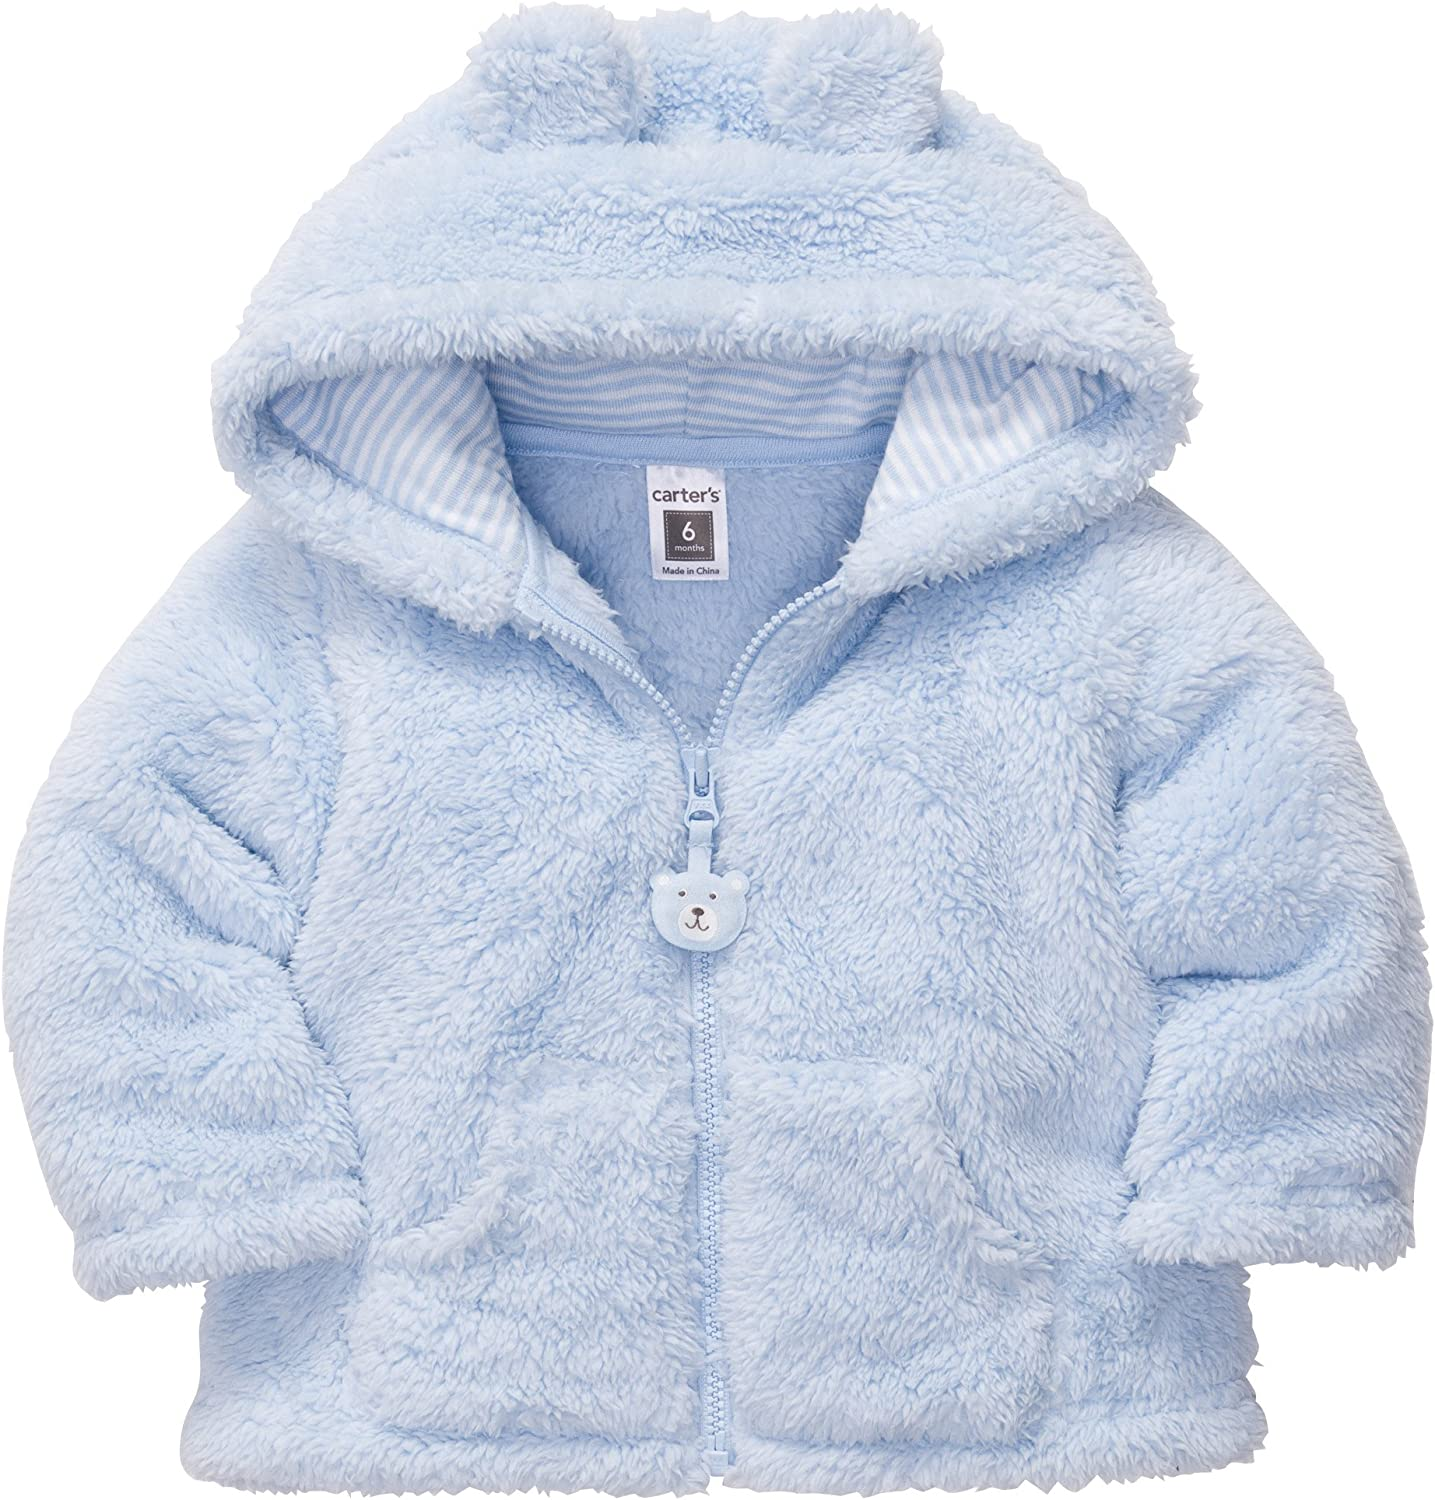 Simple Joys by Carters Baby Boys Hooded Sweater Jacket with Sherpa Lining